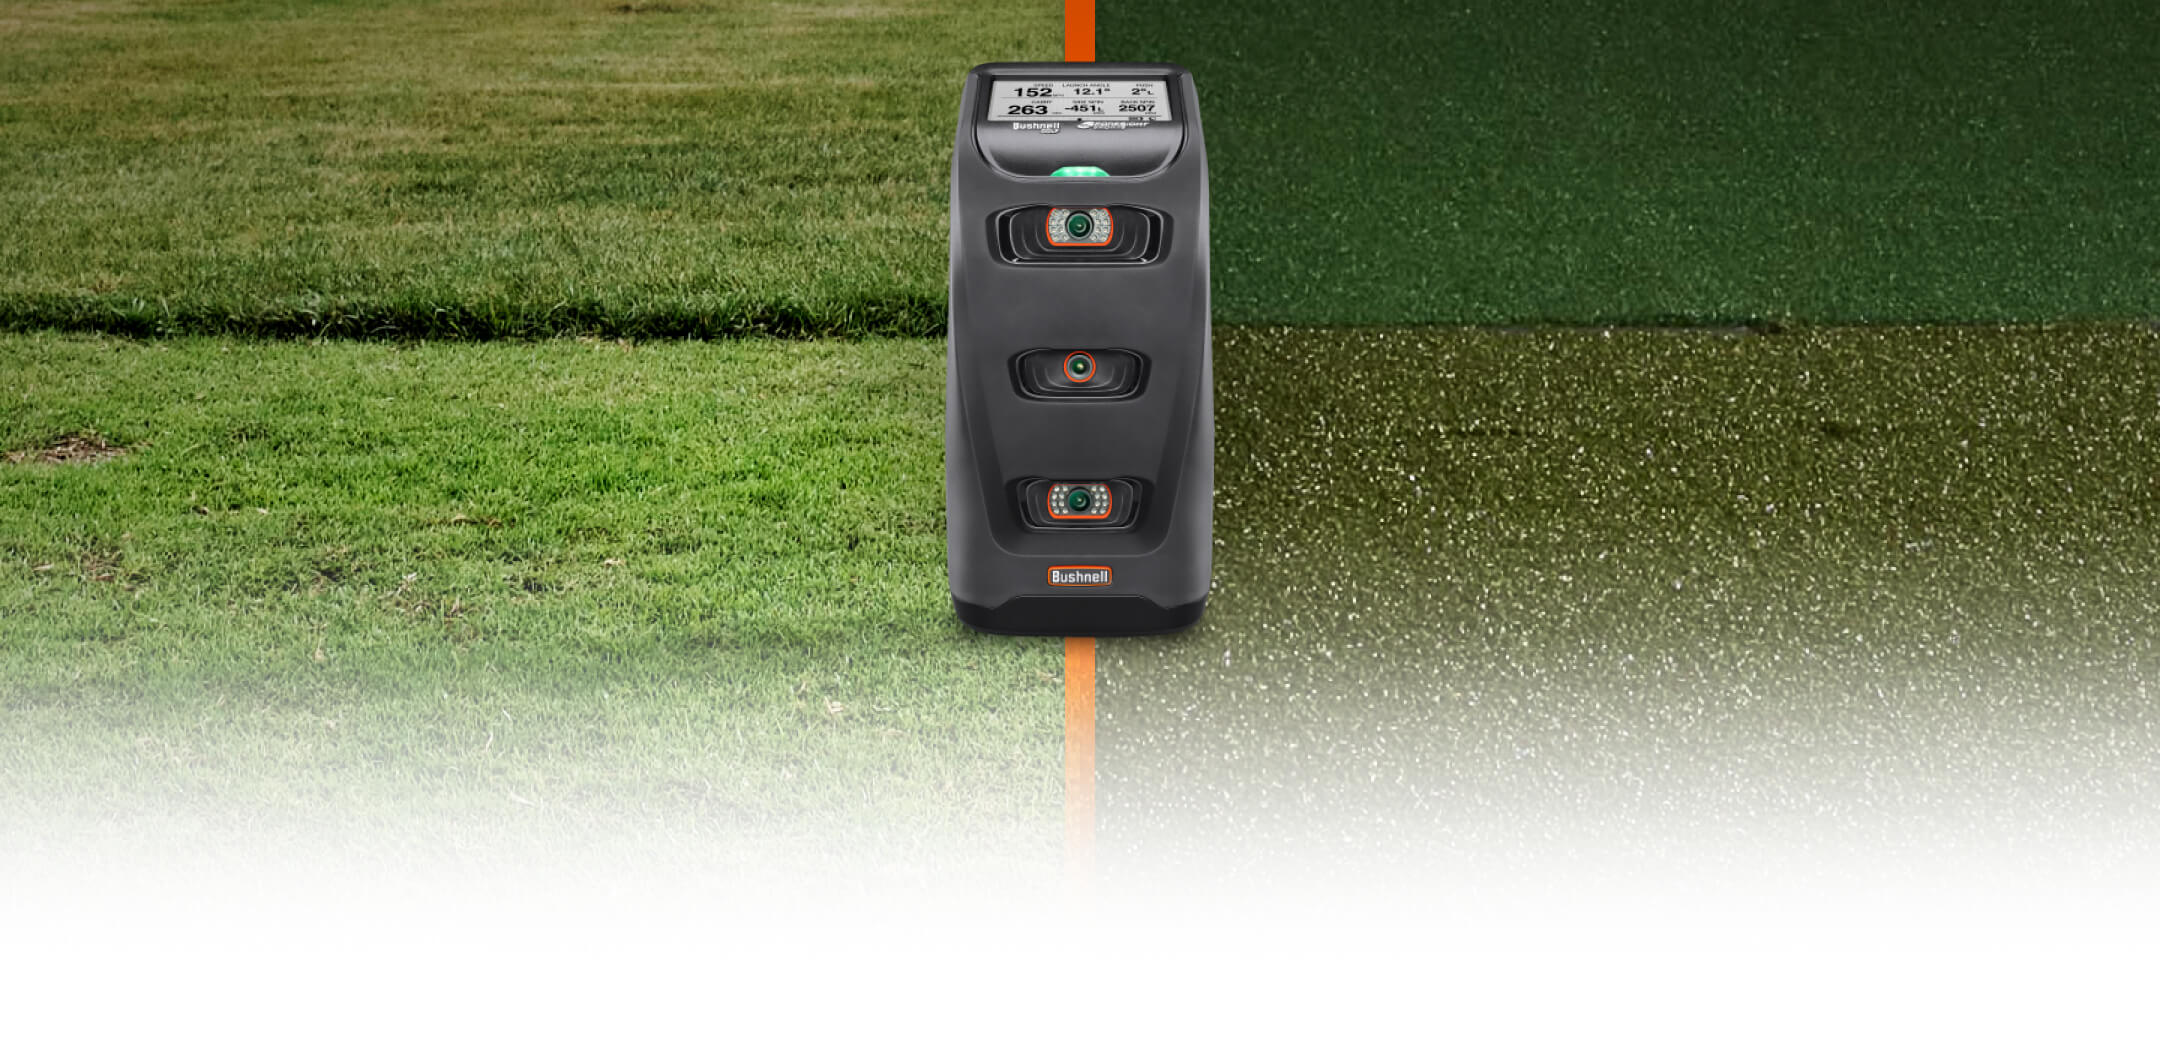 Bushnell Golf Launch Monitors Category Banner Image